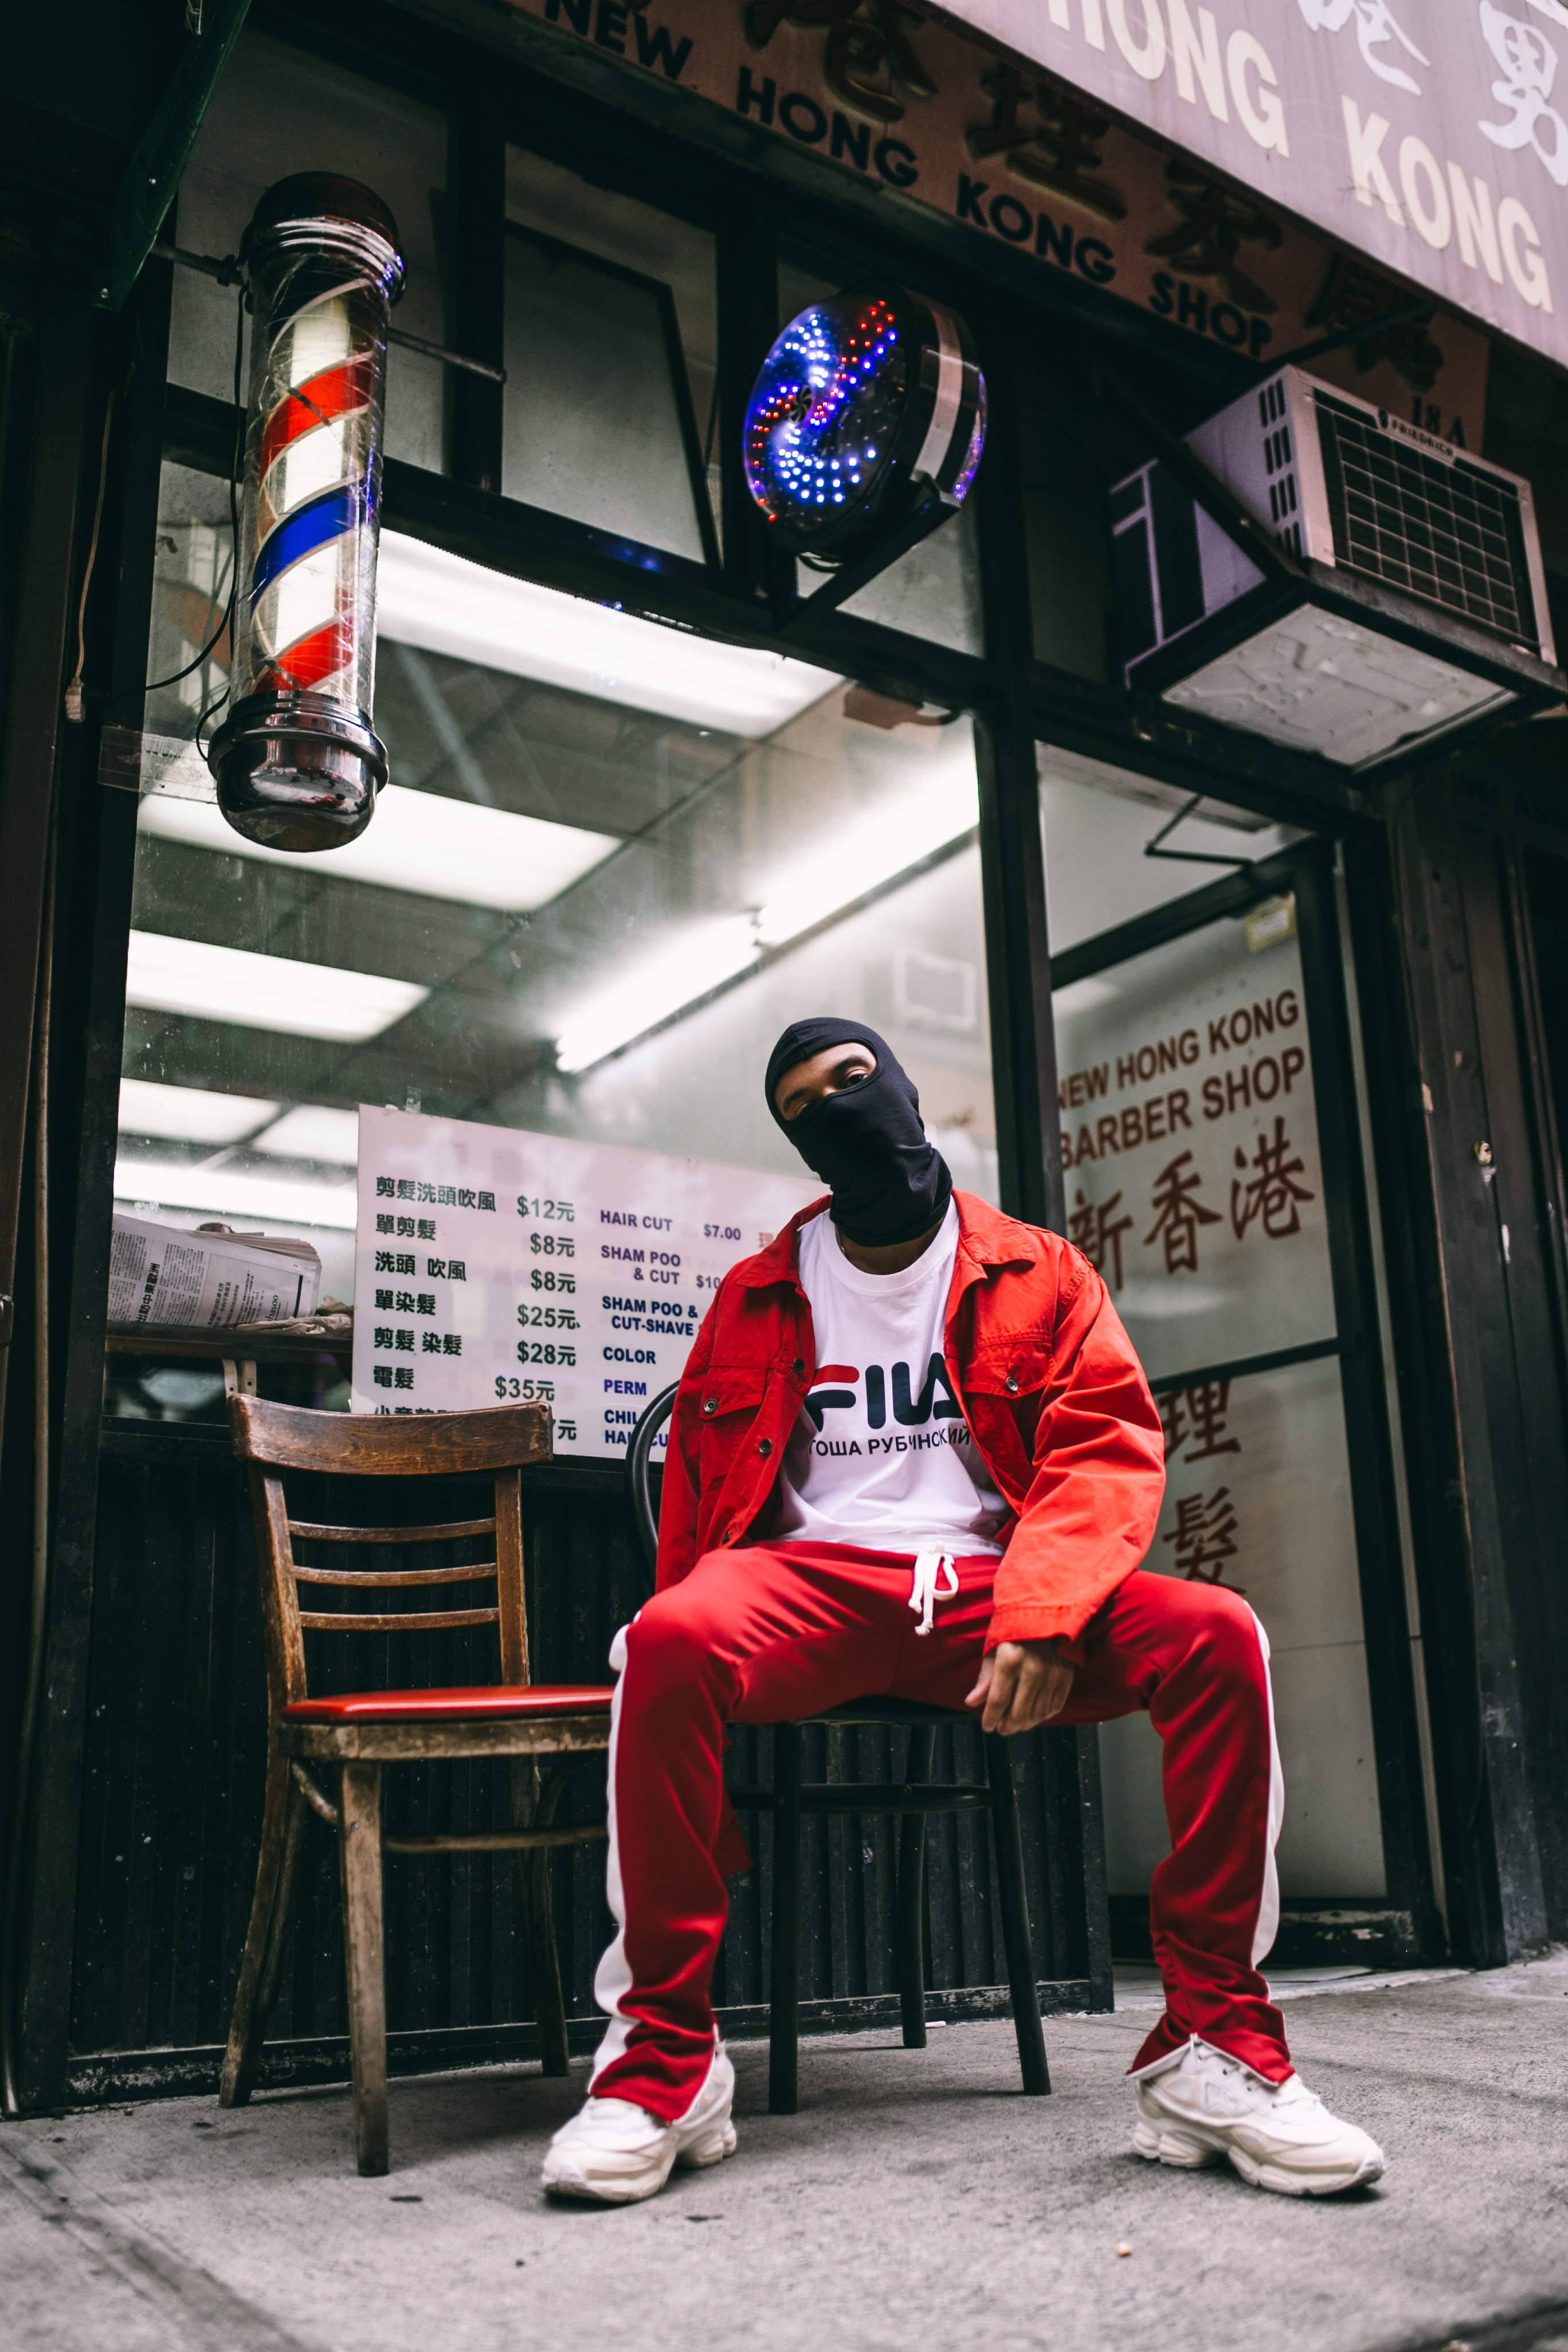 A nan in a balaclava and Fila sportswear sits in front of an old barbershop.